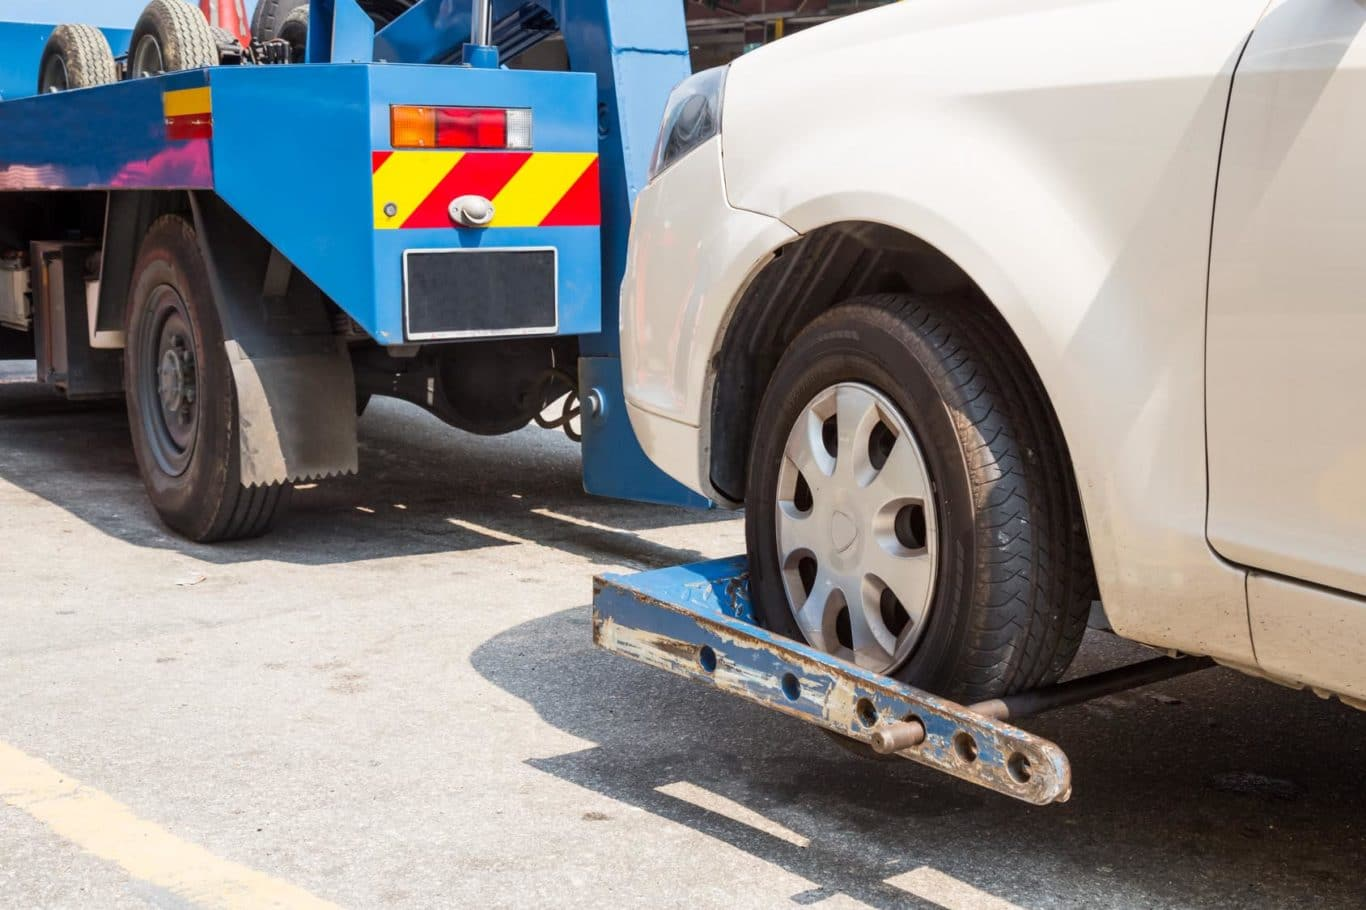 Loughlinstown expert Car Recovery services